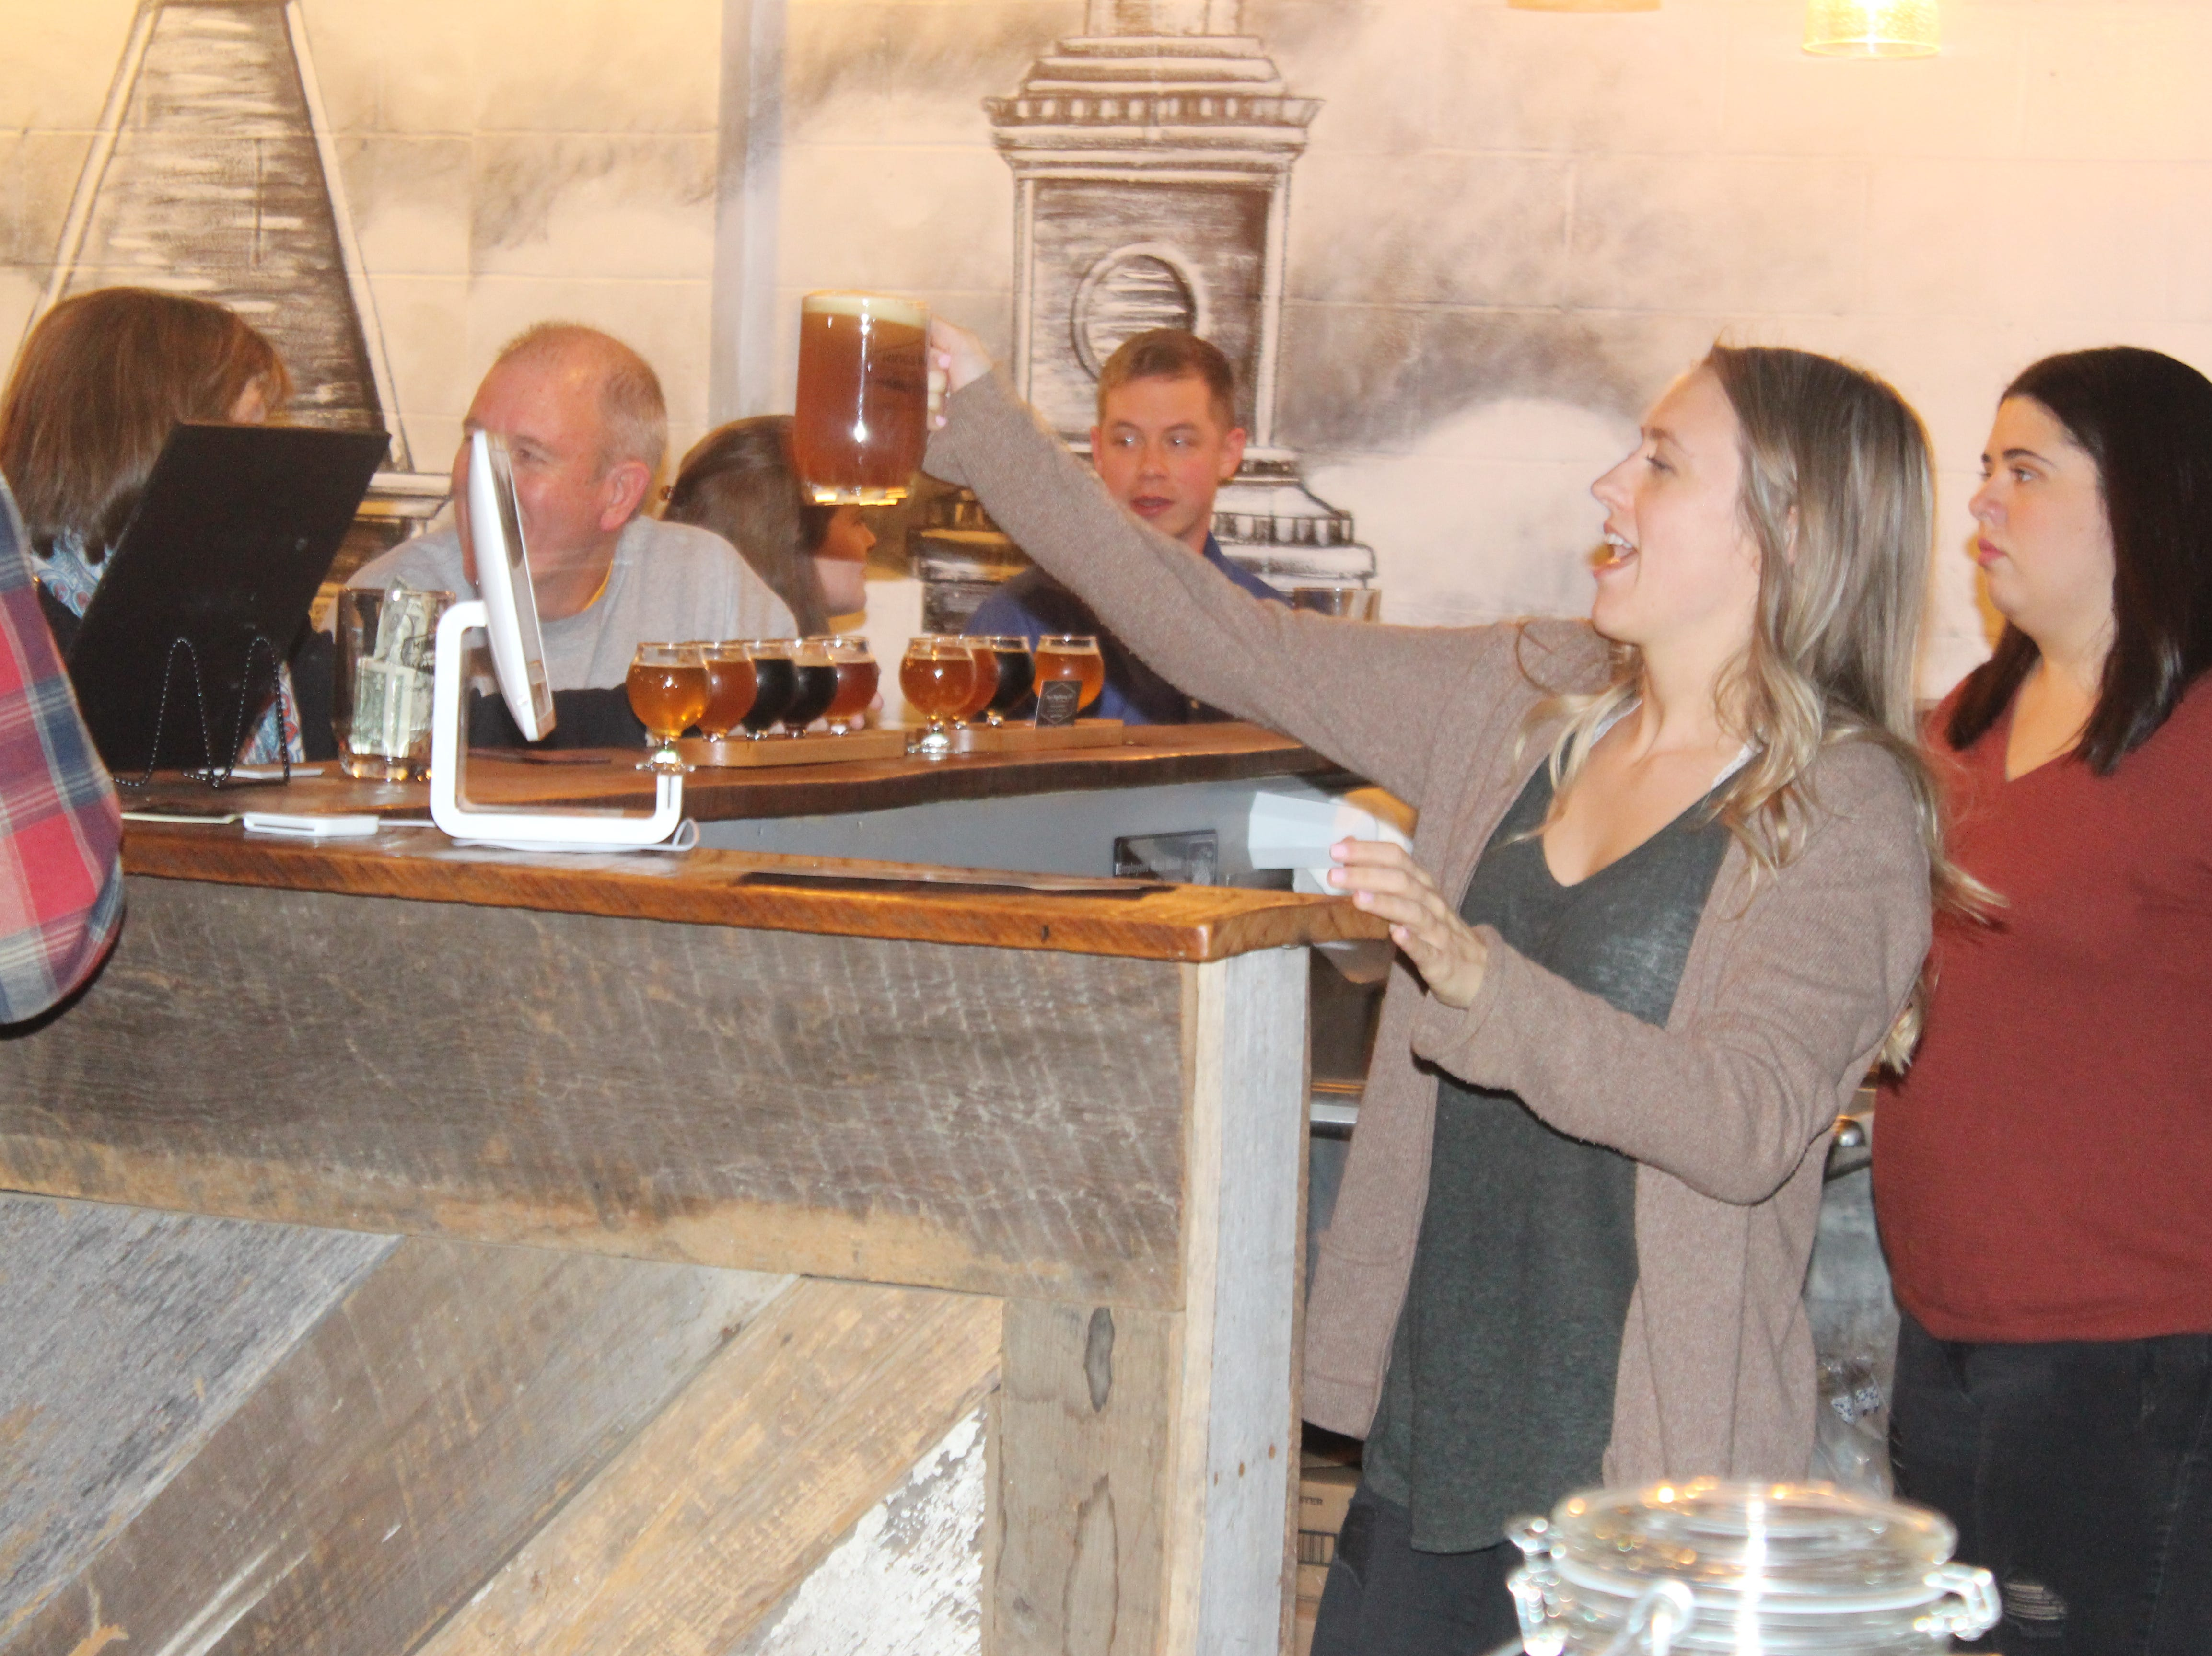 Serving up a cold brew at Kings Bluff Brewery in downtown Clarksville, which just opened.